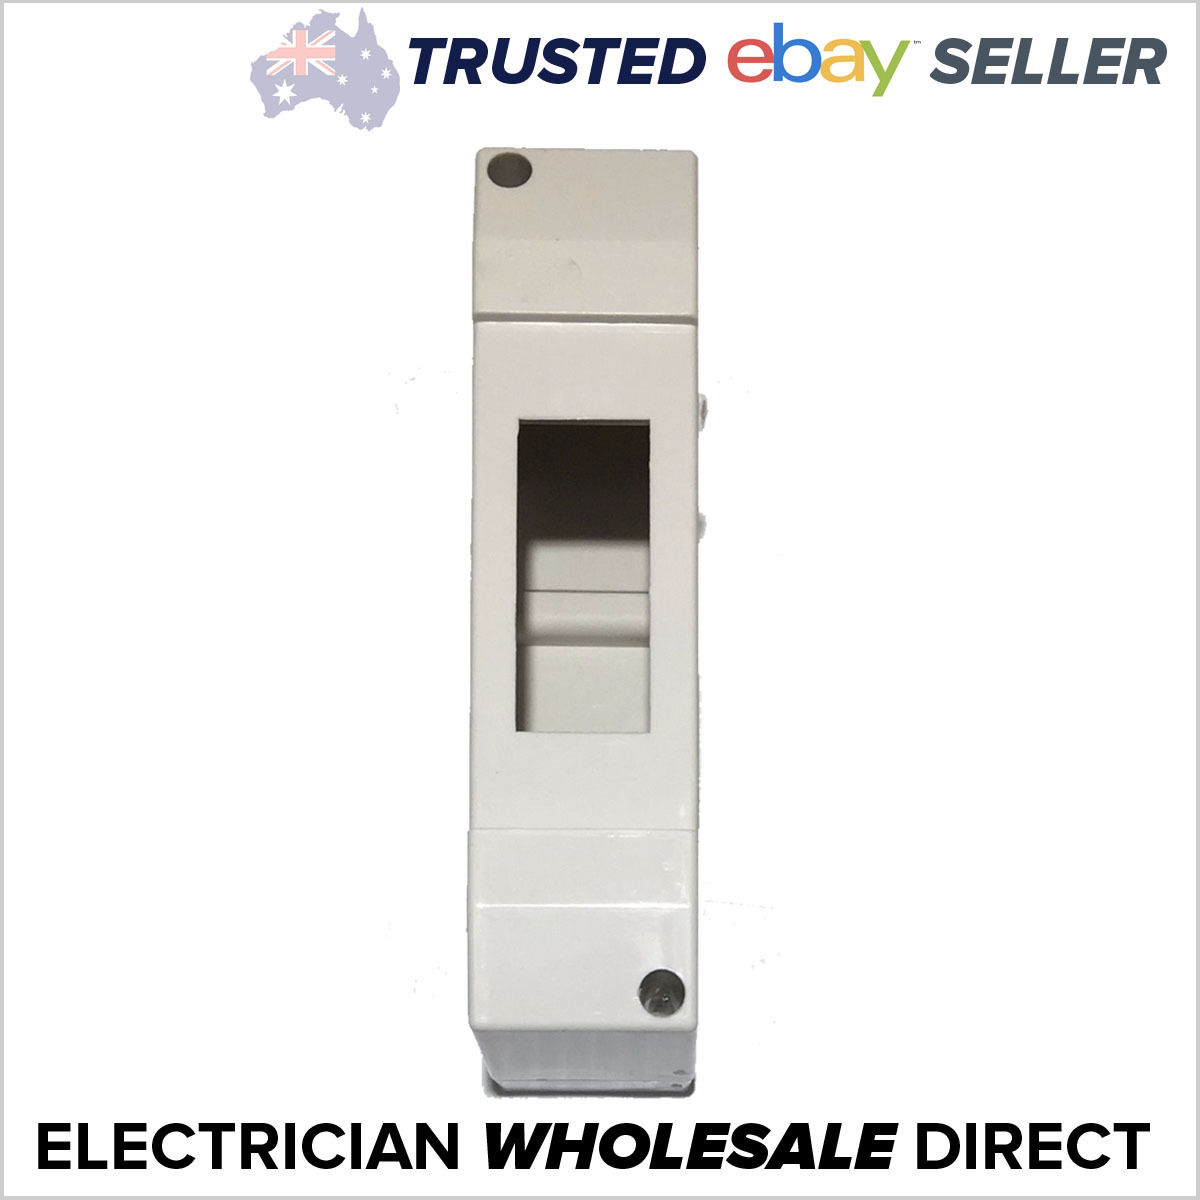 brand new 1 pole enclosure box for circuit breakers switchboardEnclosure Box Surface Board Switchboard Din Rail Circuit Breaker Rcd #7